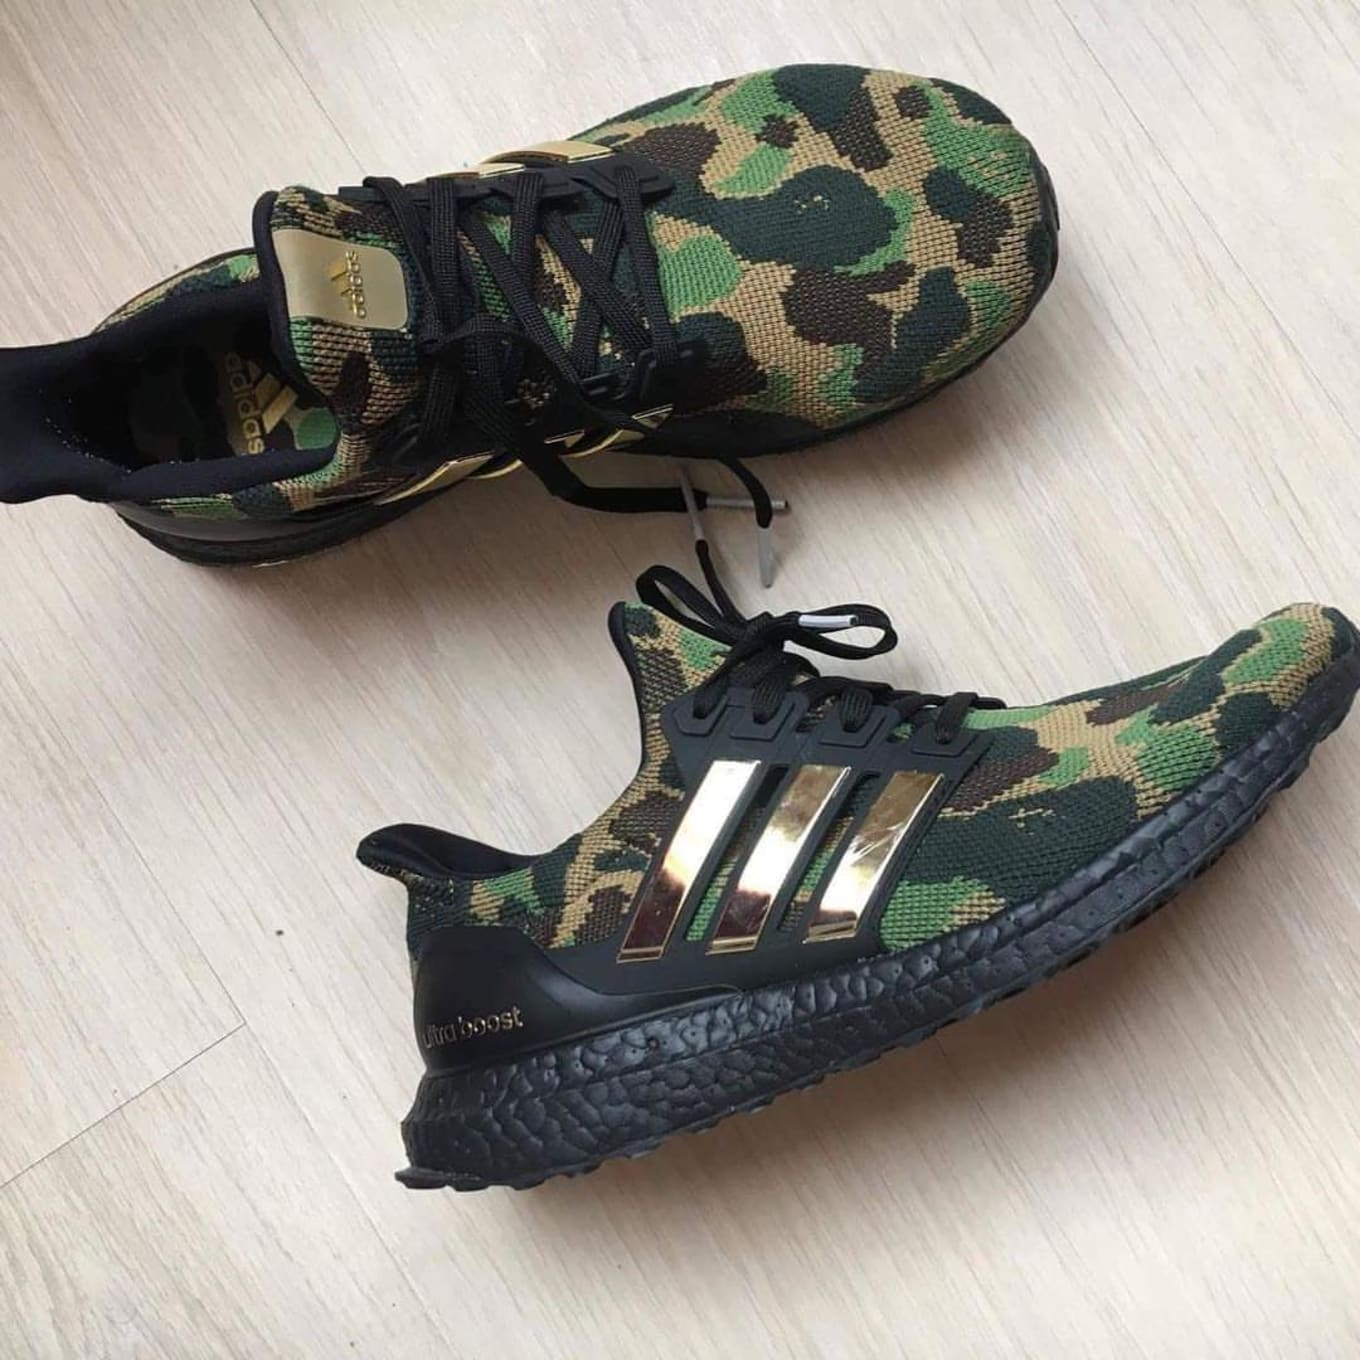 164720b5e Bape x Adidas Ultra Boost Collaboration Release Date